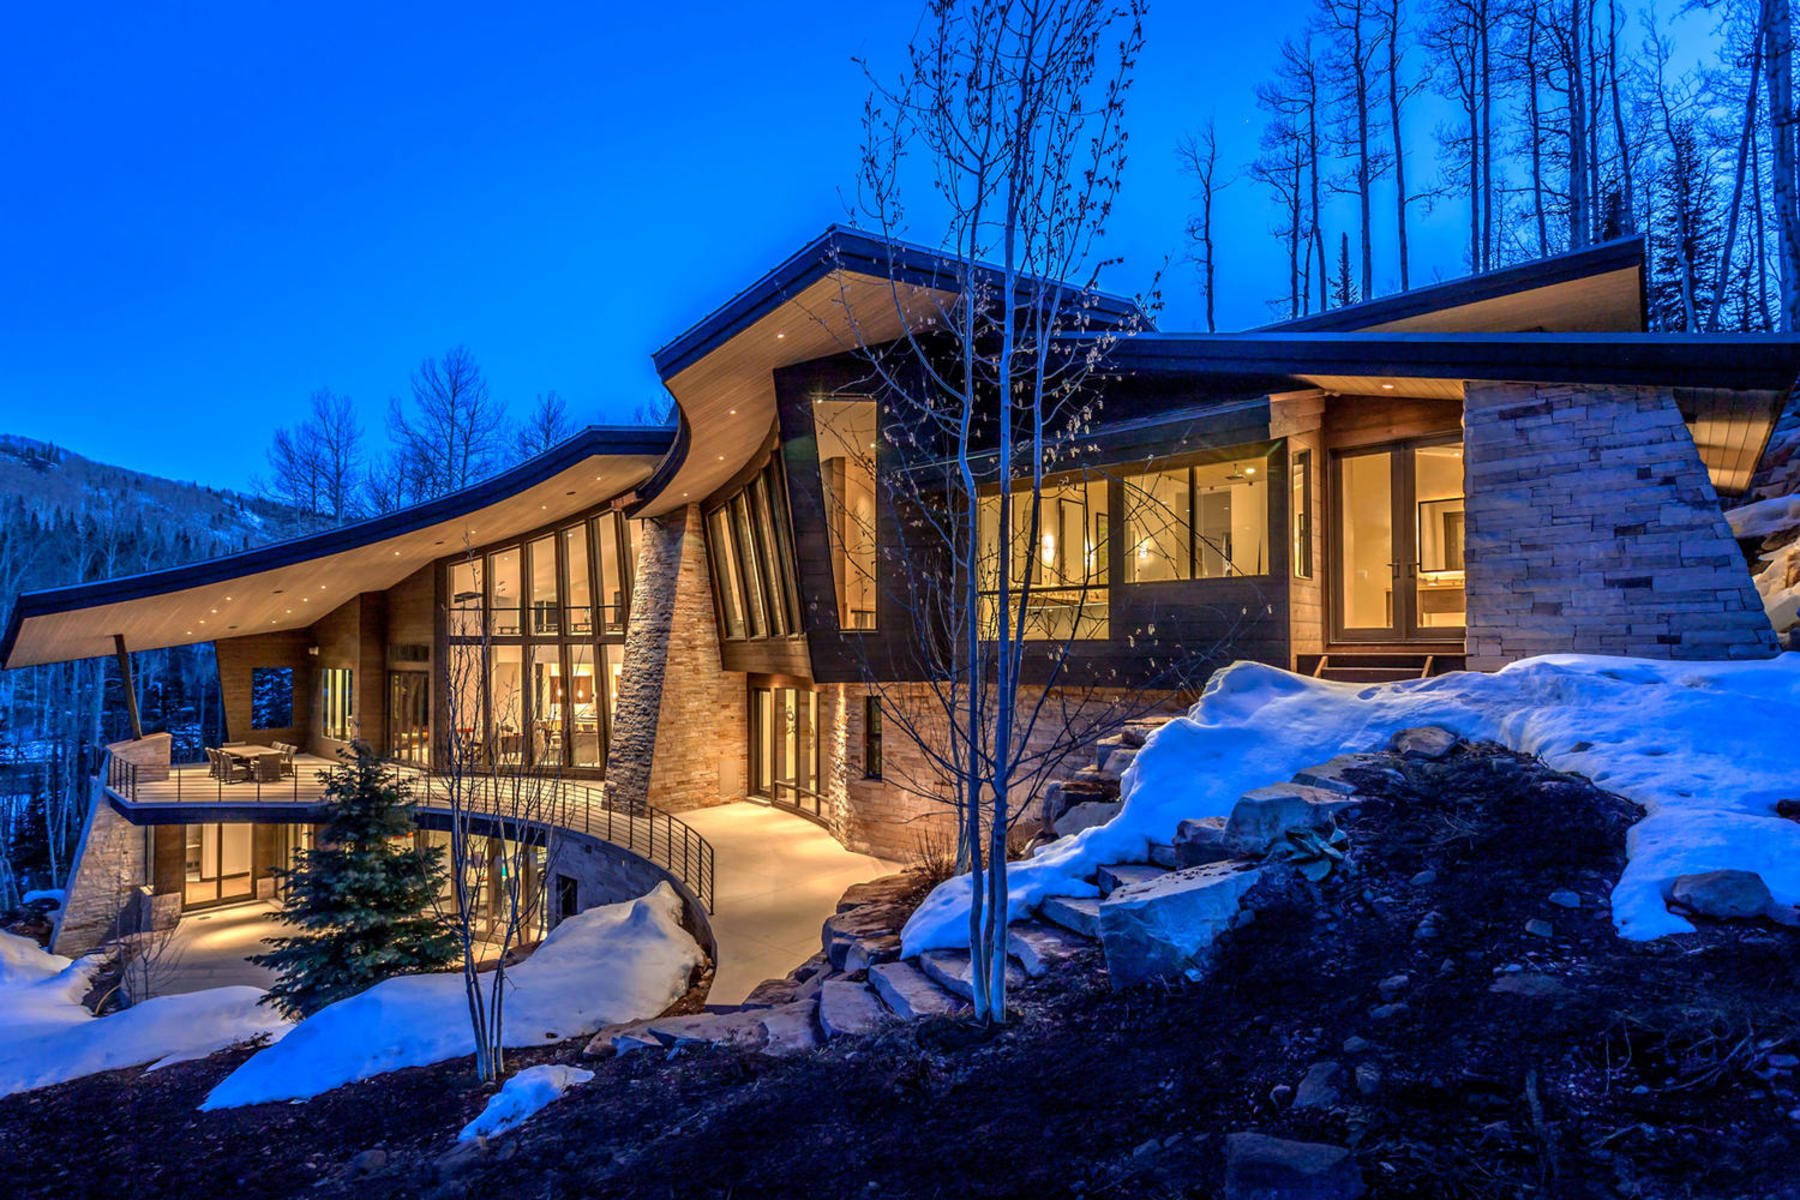 Moradia para Venda às Stunning Mountain Modern Ski Escape 184 White Pine Canyon Rd Park City, Utah 84060 Estados Unidos